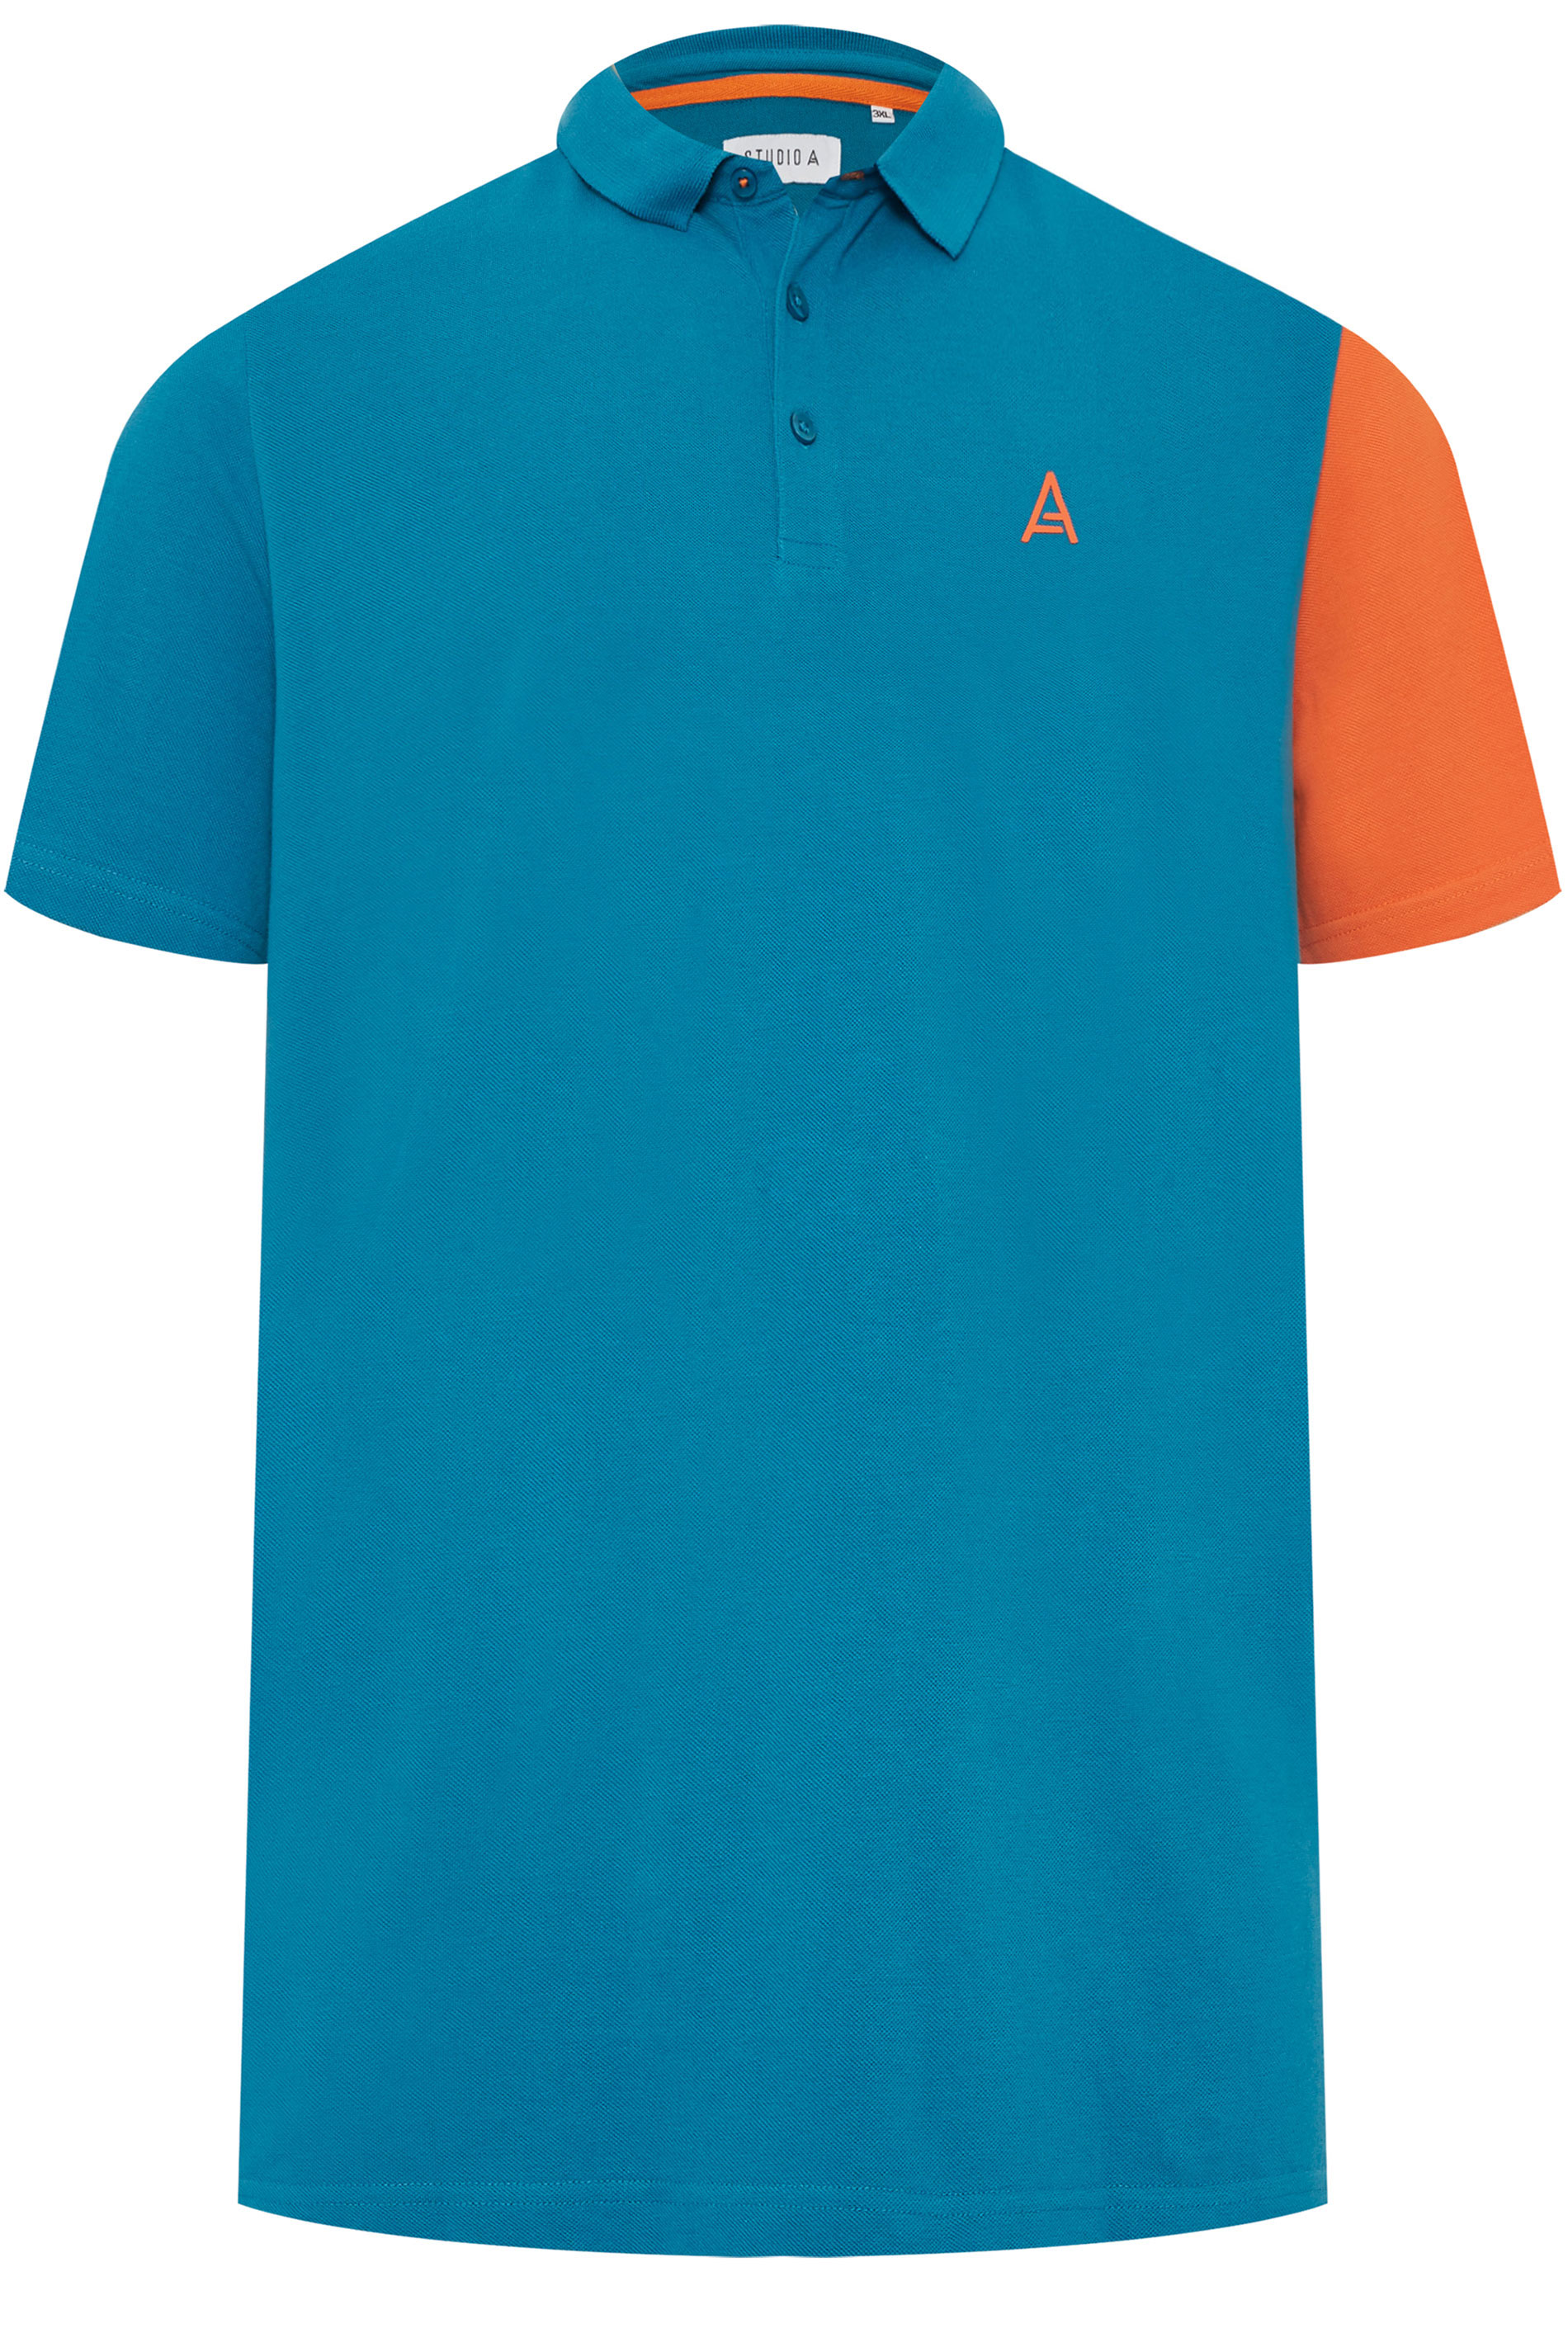 STUDIO A Blue Colour Block Polo Shirt